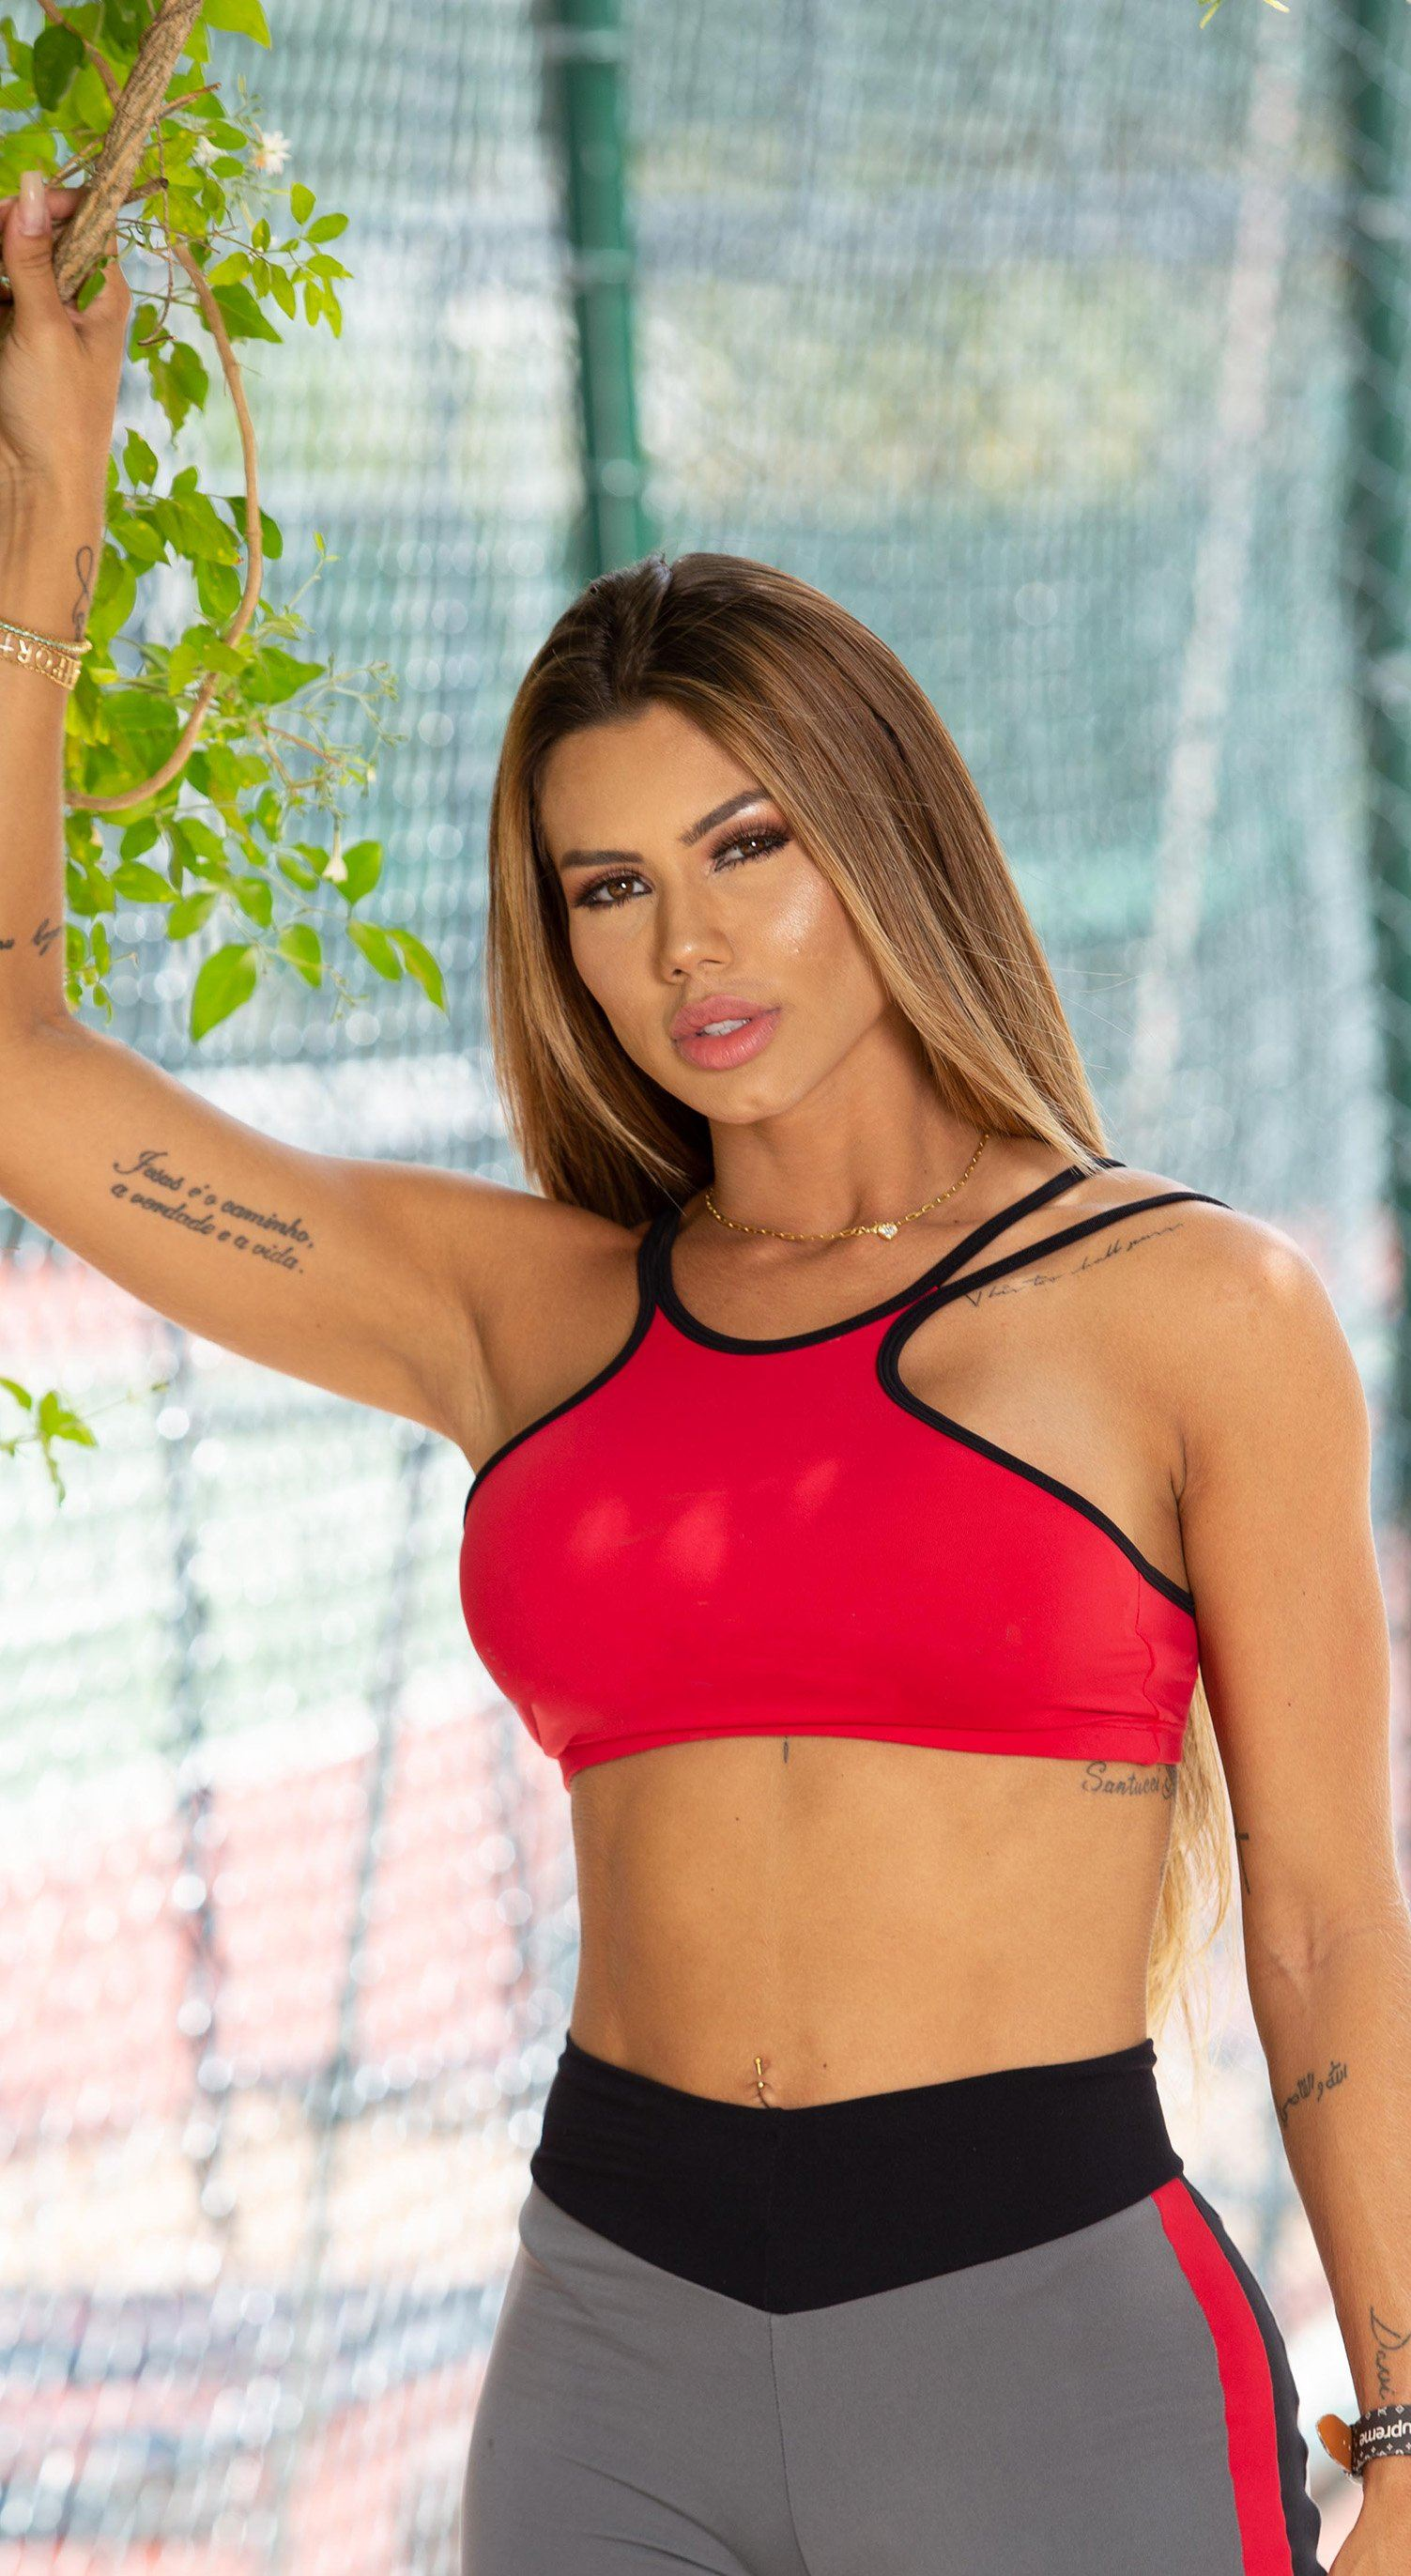 Brazilian Sports Bra - Agile Red & Black